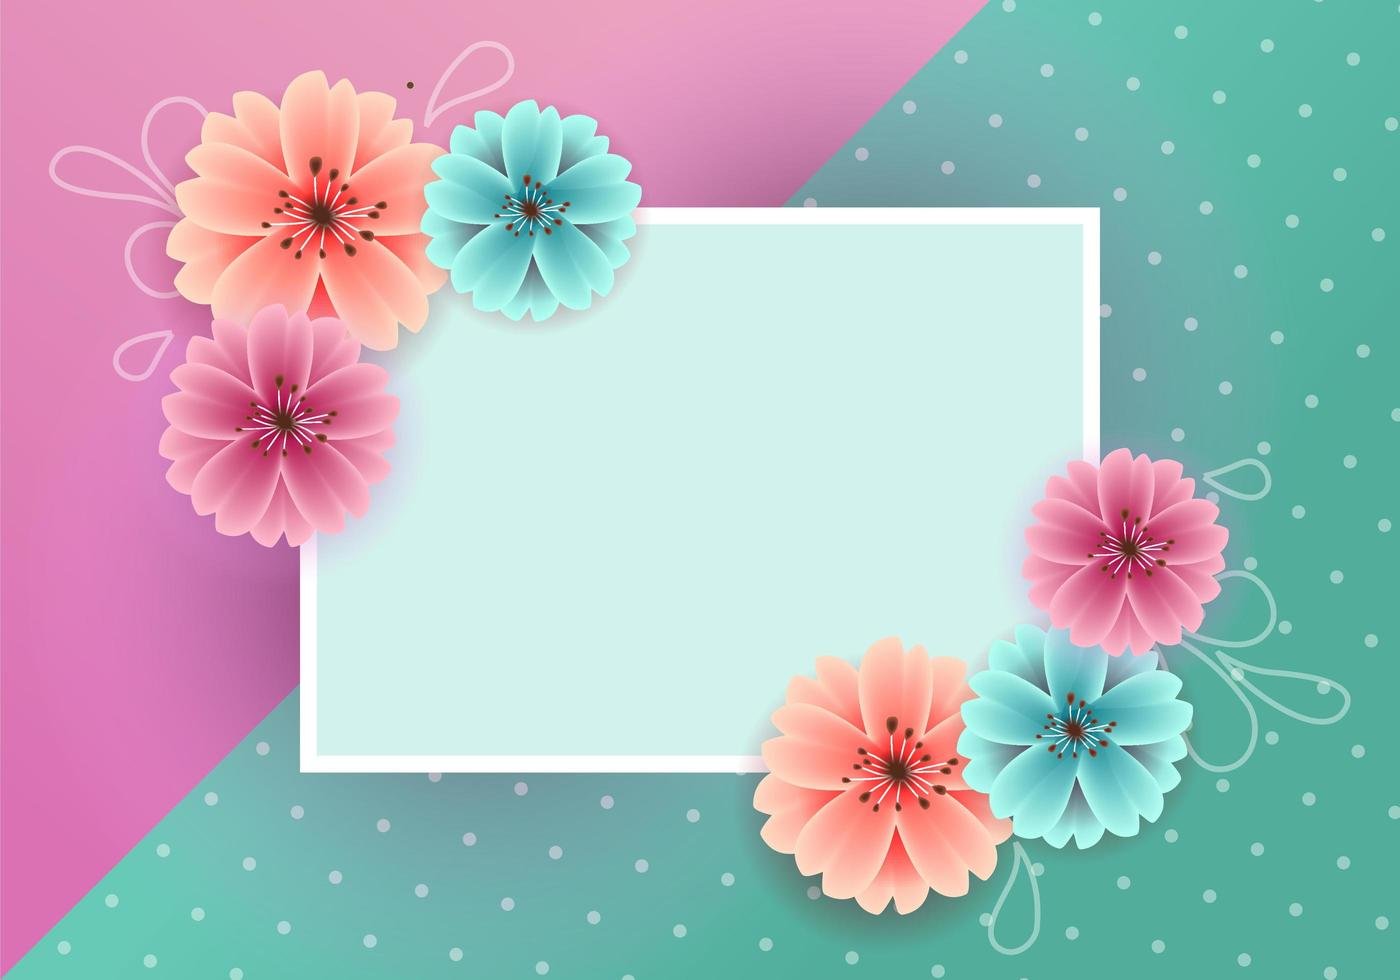 colorful spring background with beautiful flowers and